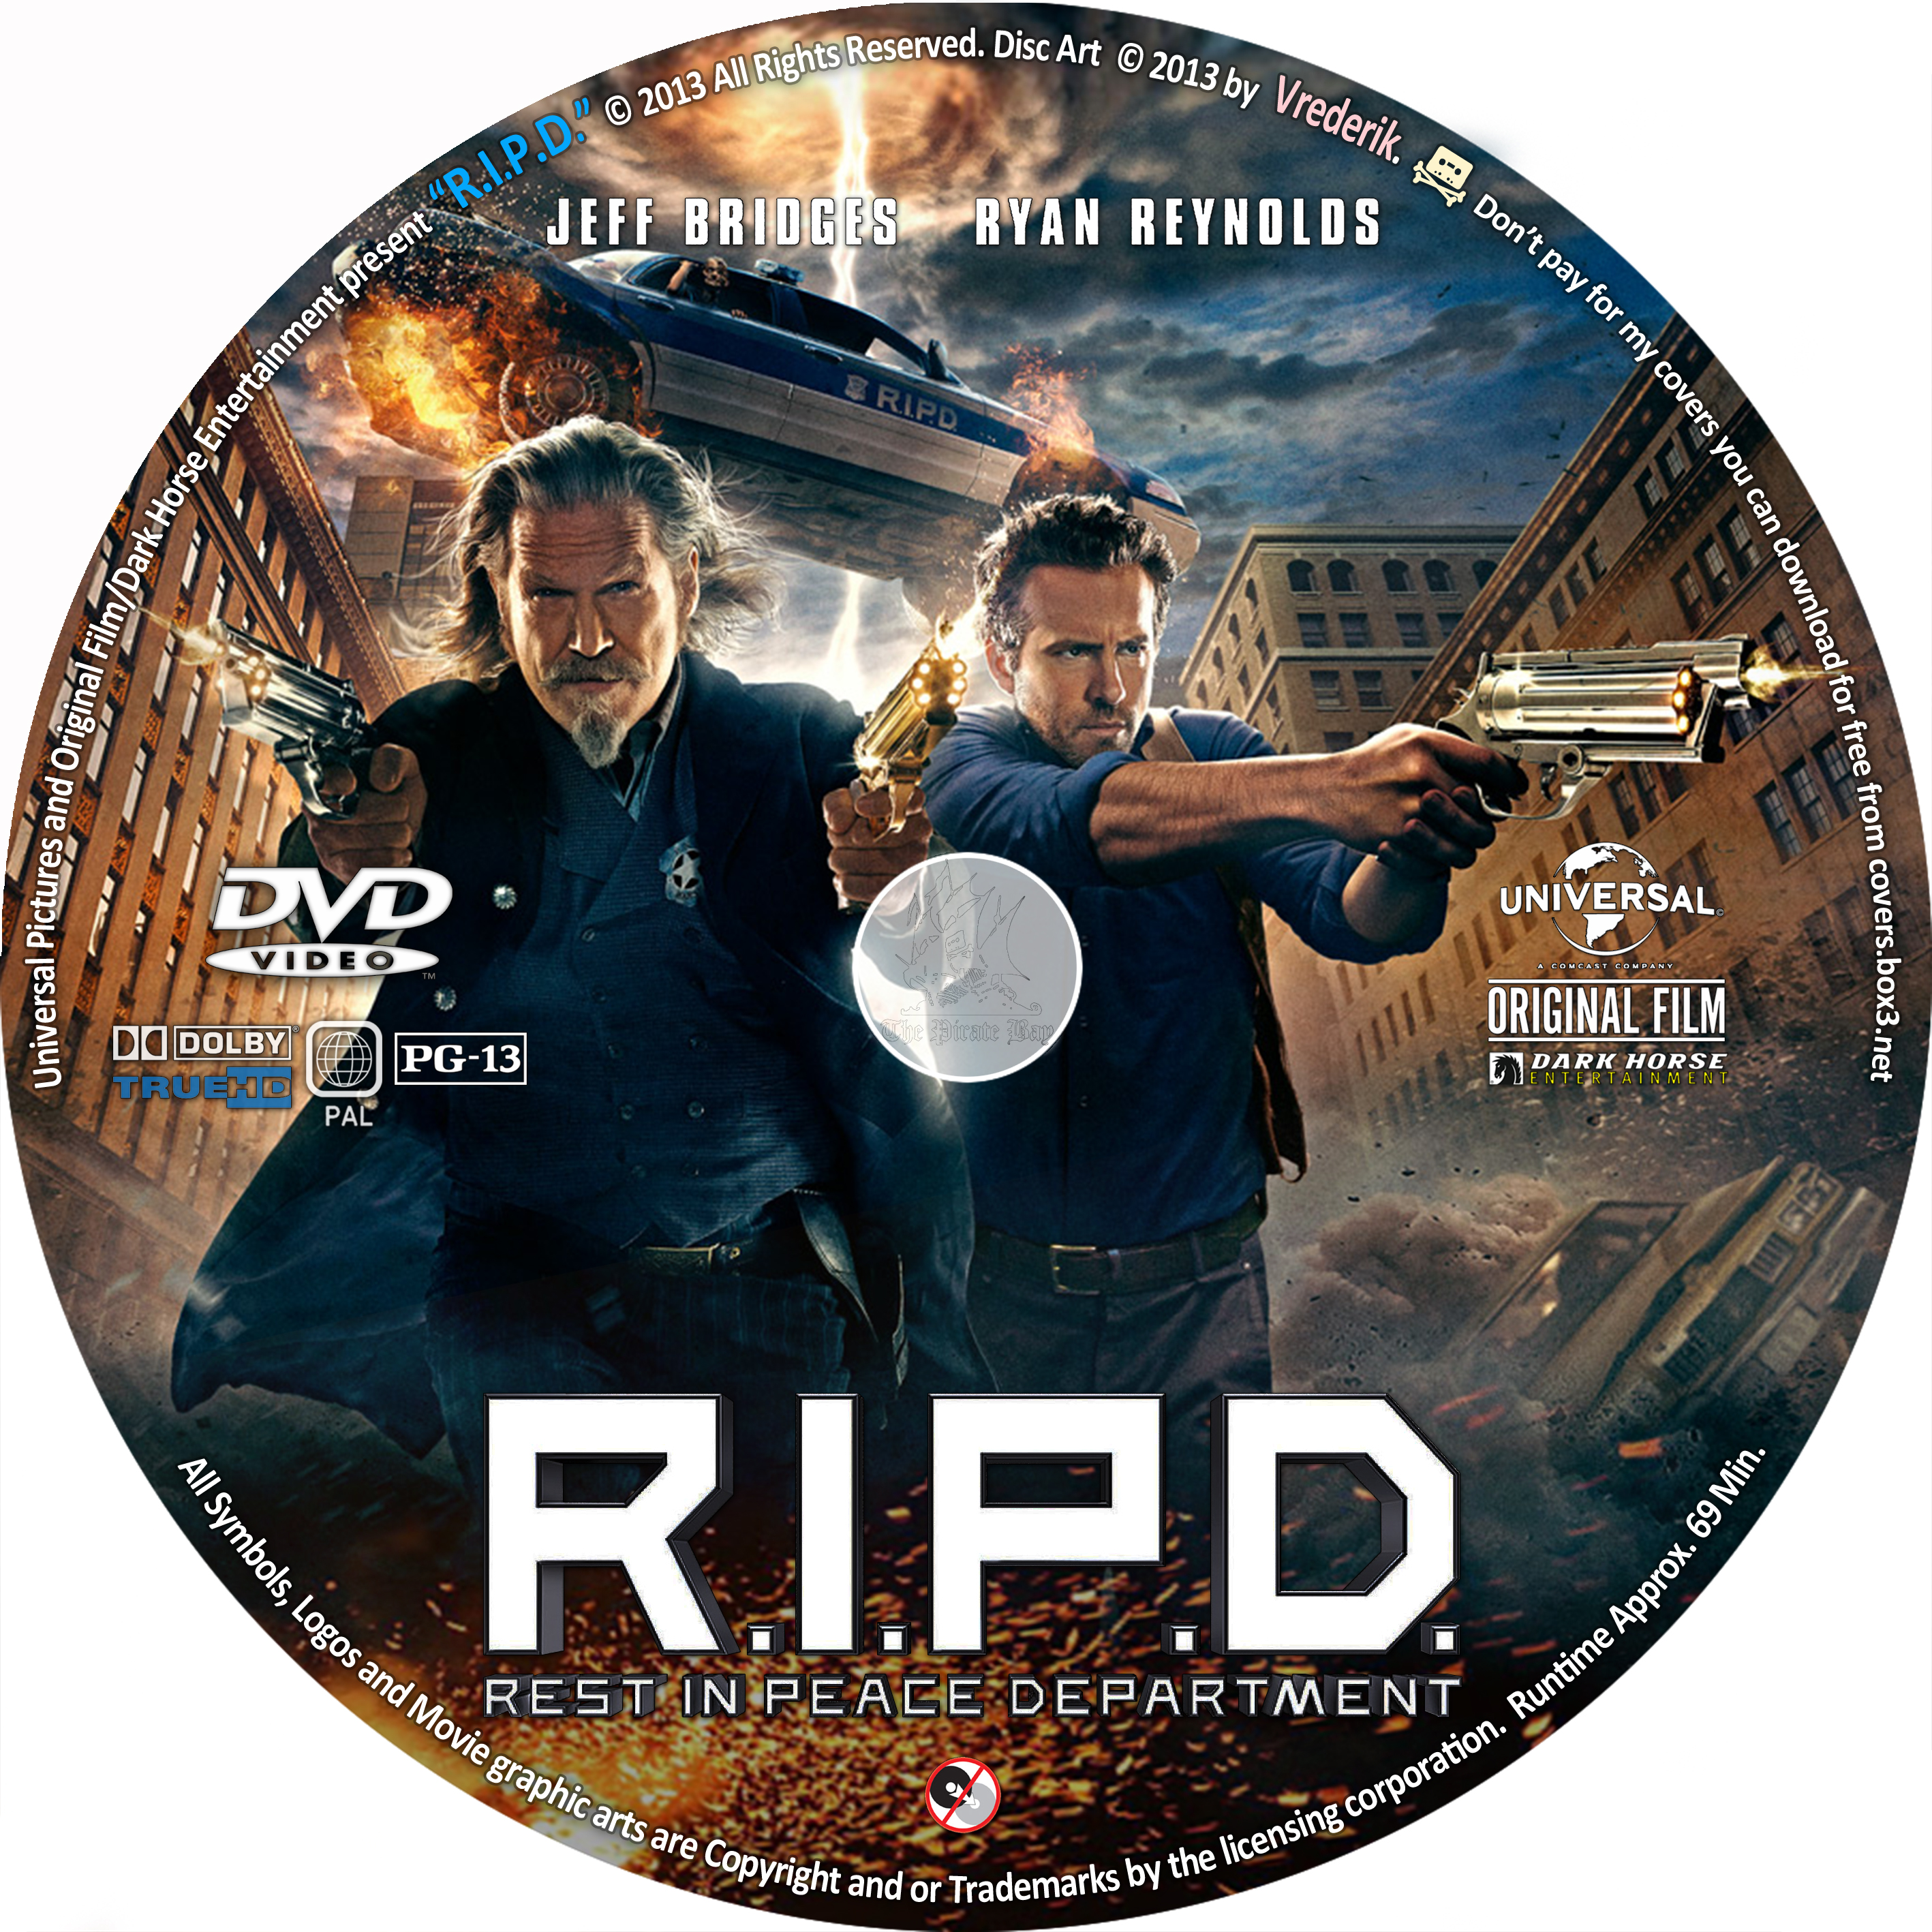 COVERS.BOX.SK ::: R.I.P.D. (2013) - high quality DVD ... R.i.p.d. Dvd